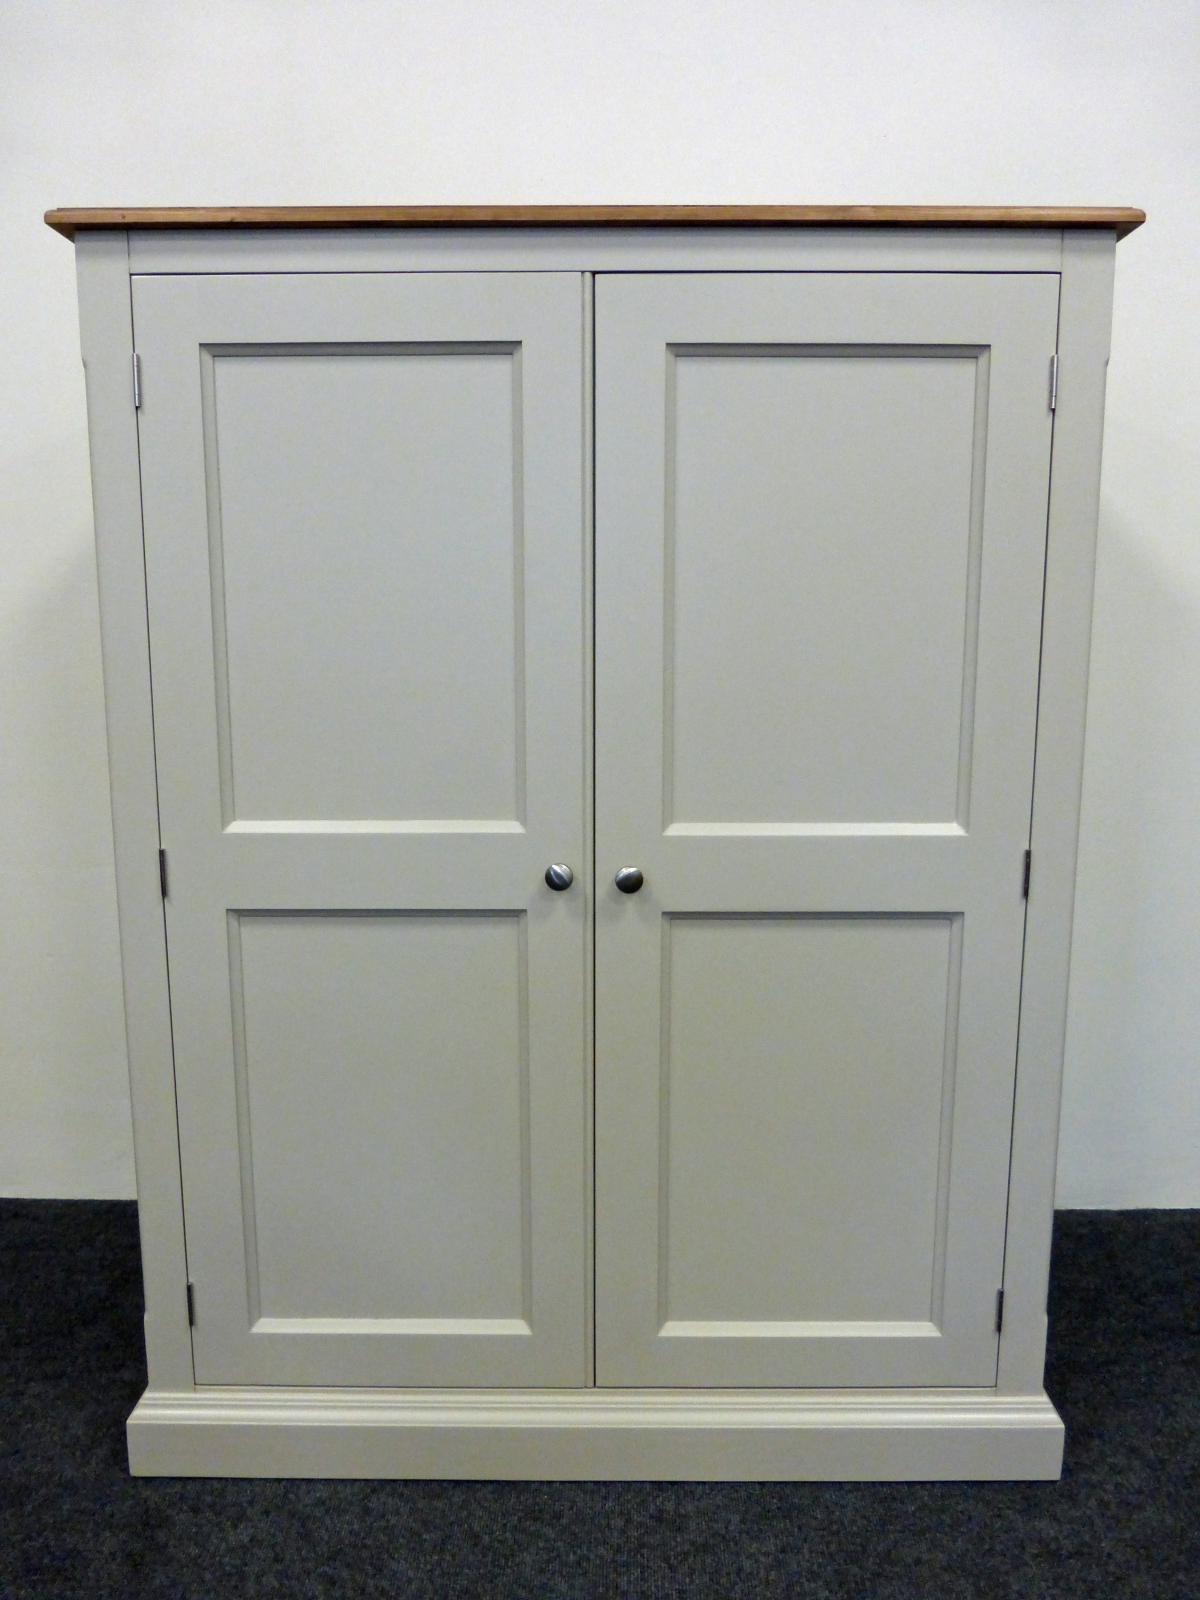 Preferred Double Pine Wardrobes Intended For Painted Low Eaves Double Wardrobe – Bespoke Bedroom Furniture (View 10 of 15)